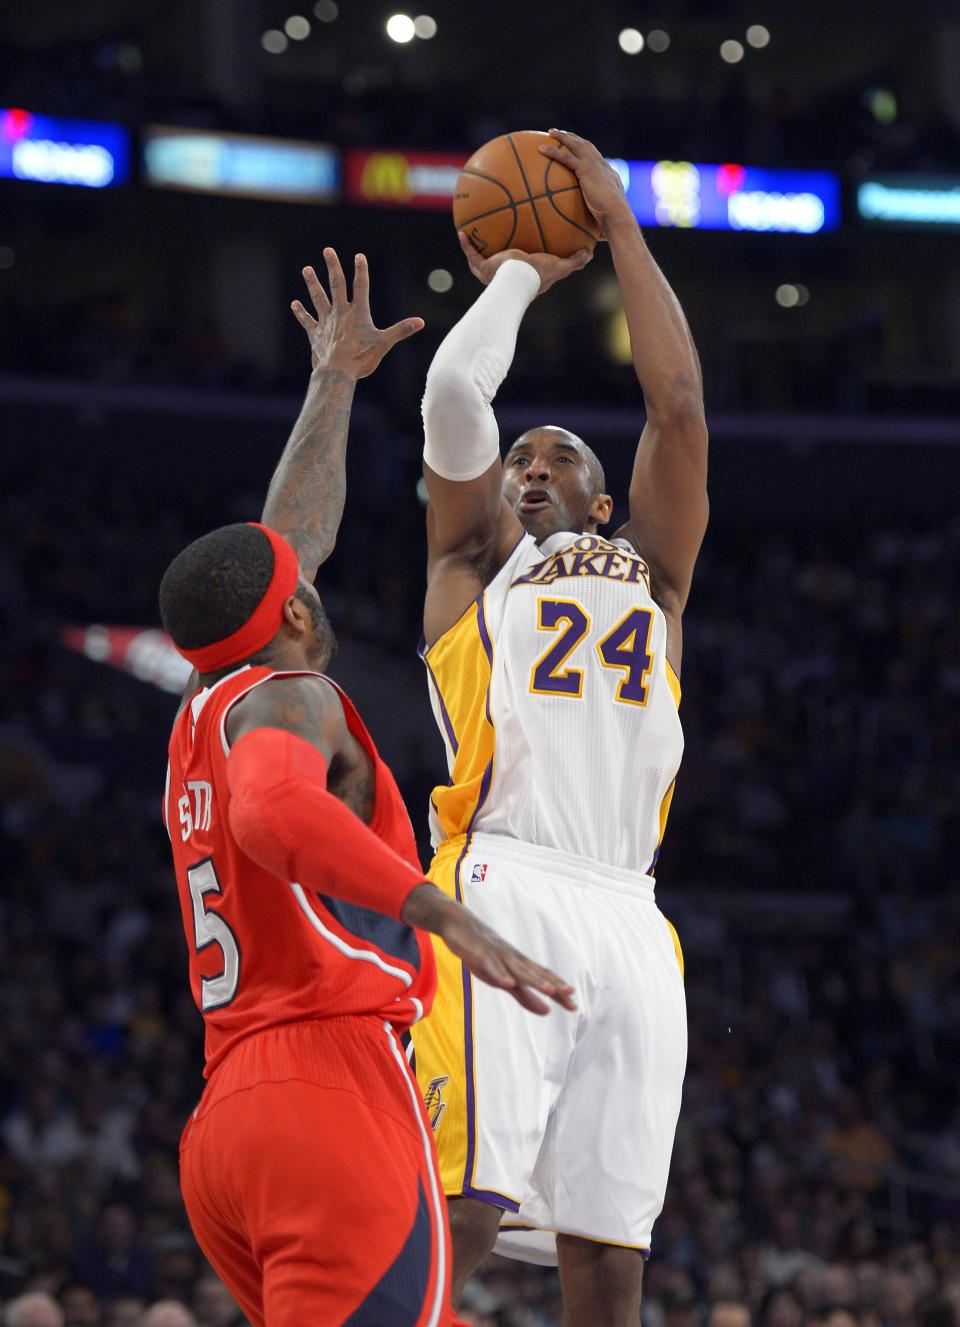 Los Angeles Lakers guard Kobe Bryant, right, puts up a shot as Atlanta Hawks forward Josh Smith defends during the first half of their NBA basketball game, Sunday, March 3, 2013, in Los Angeles. (AP Photo/Mark J. Terrill)